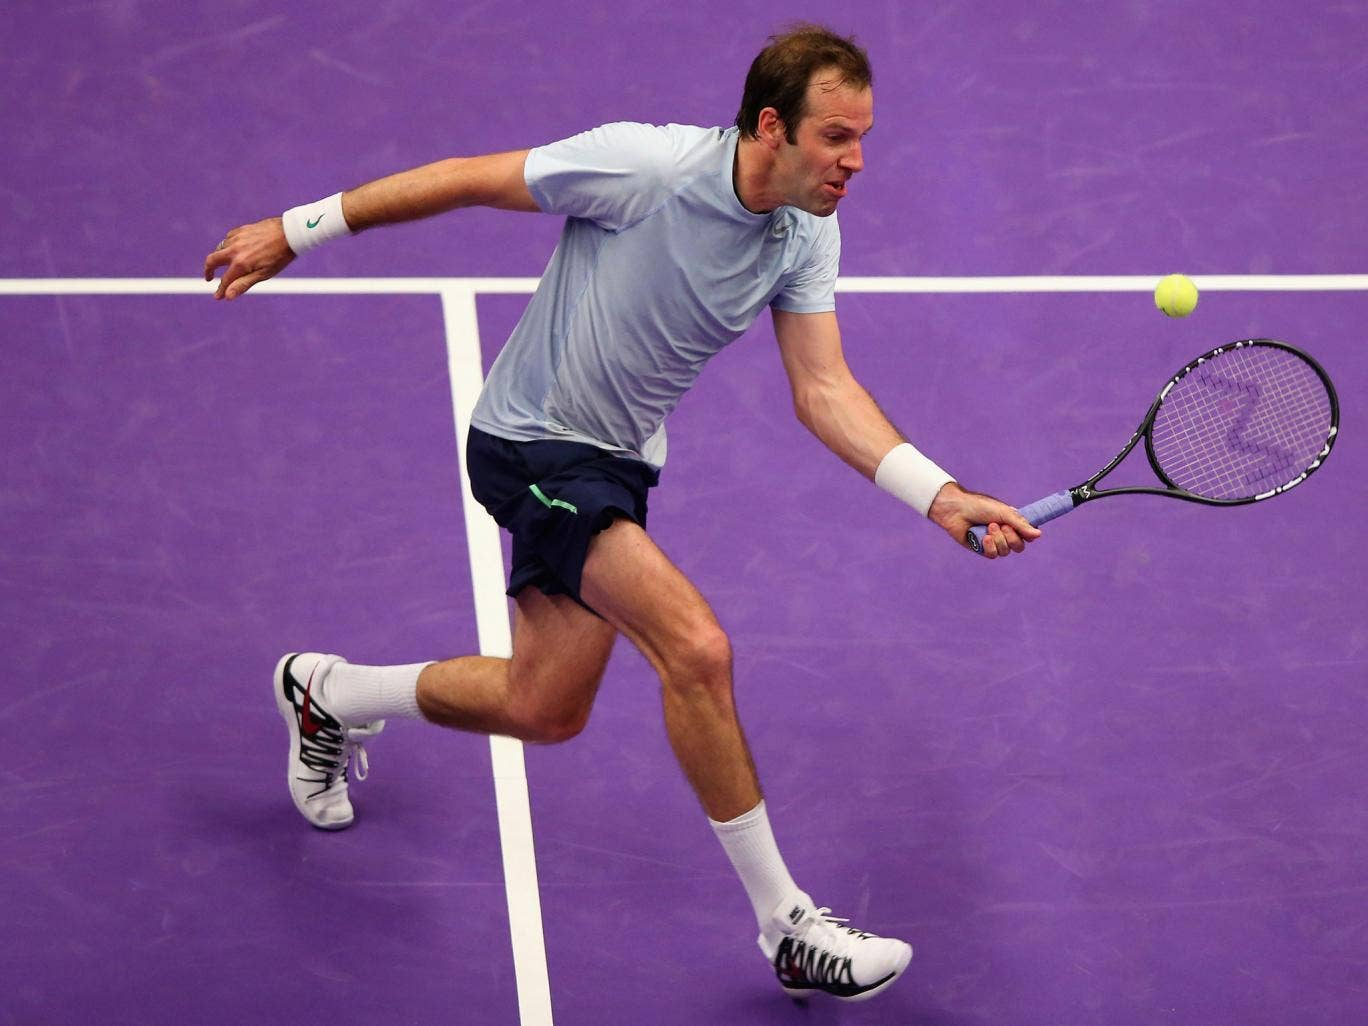 Greg Rusedski plays a forehand during his match against Pat Rafter at the Royal Albert Hall